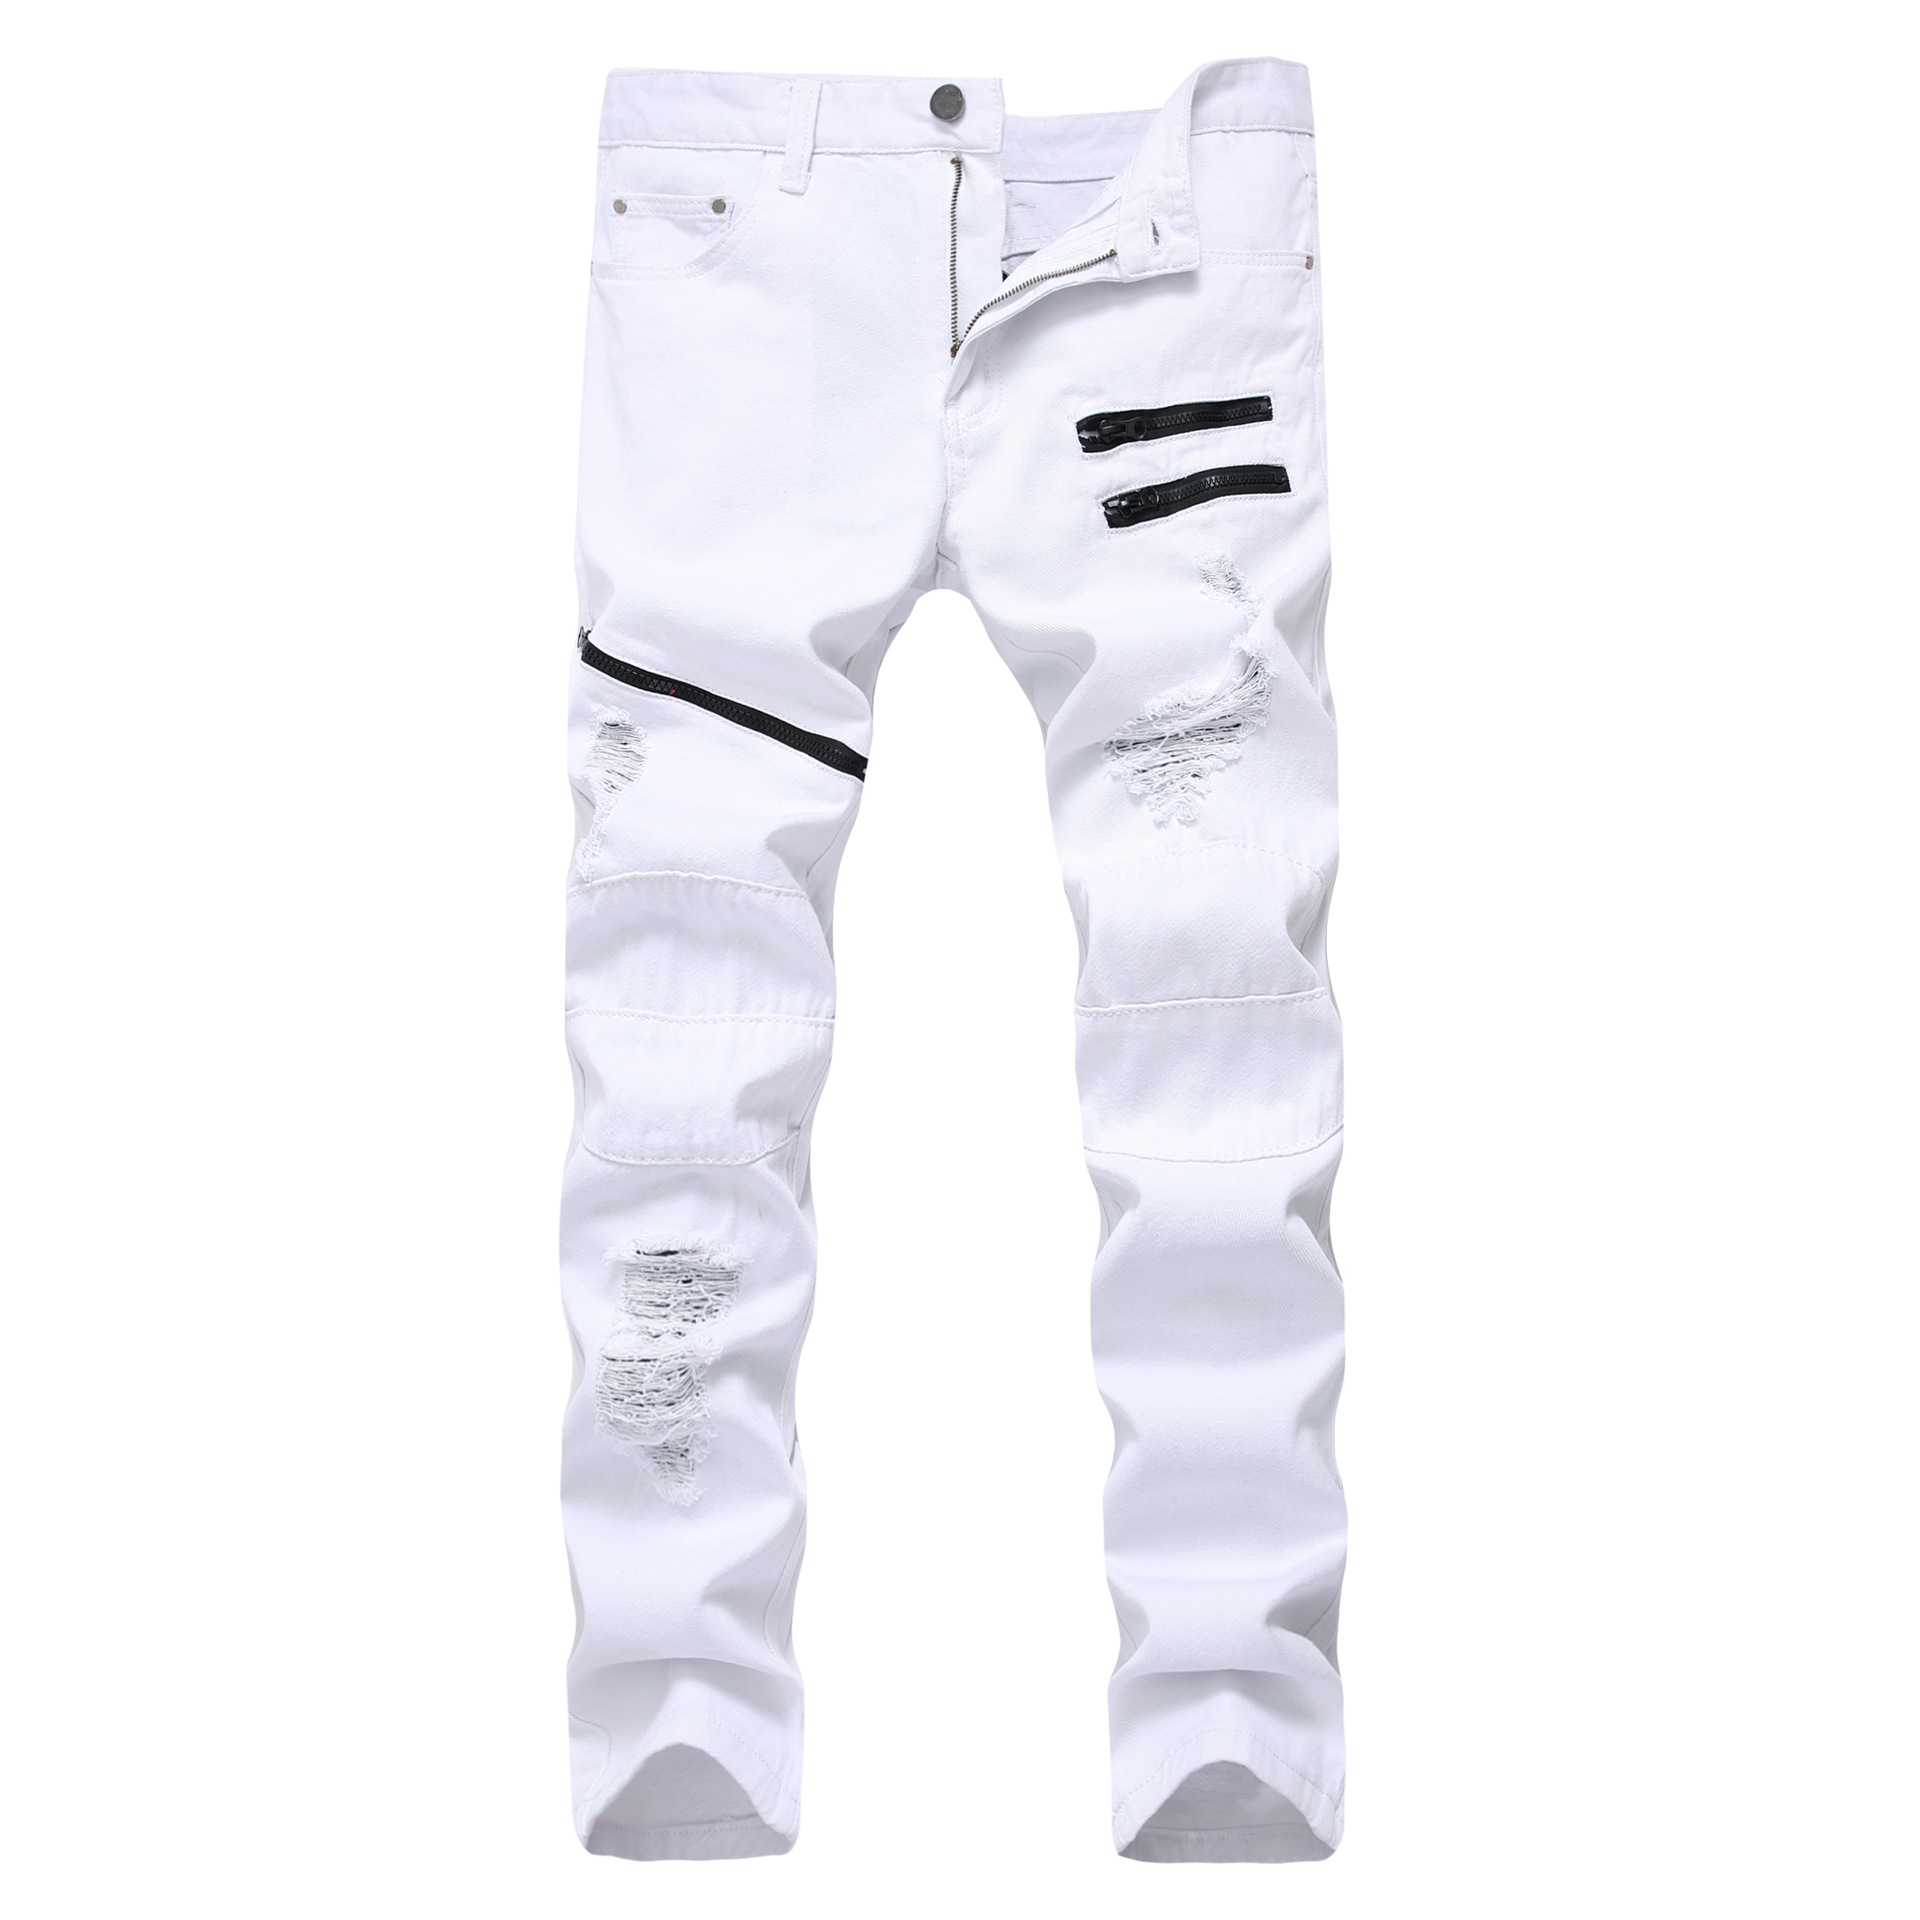 White Red Hole Slim Skinny Men's Ripped Jeans Multiple Zipper Decoration Casual Hip Hop Jeans Men Streetwear Denim Trousers